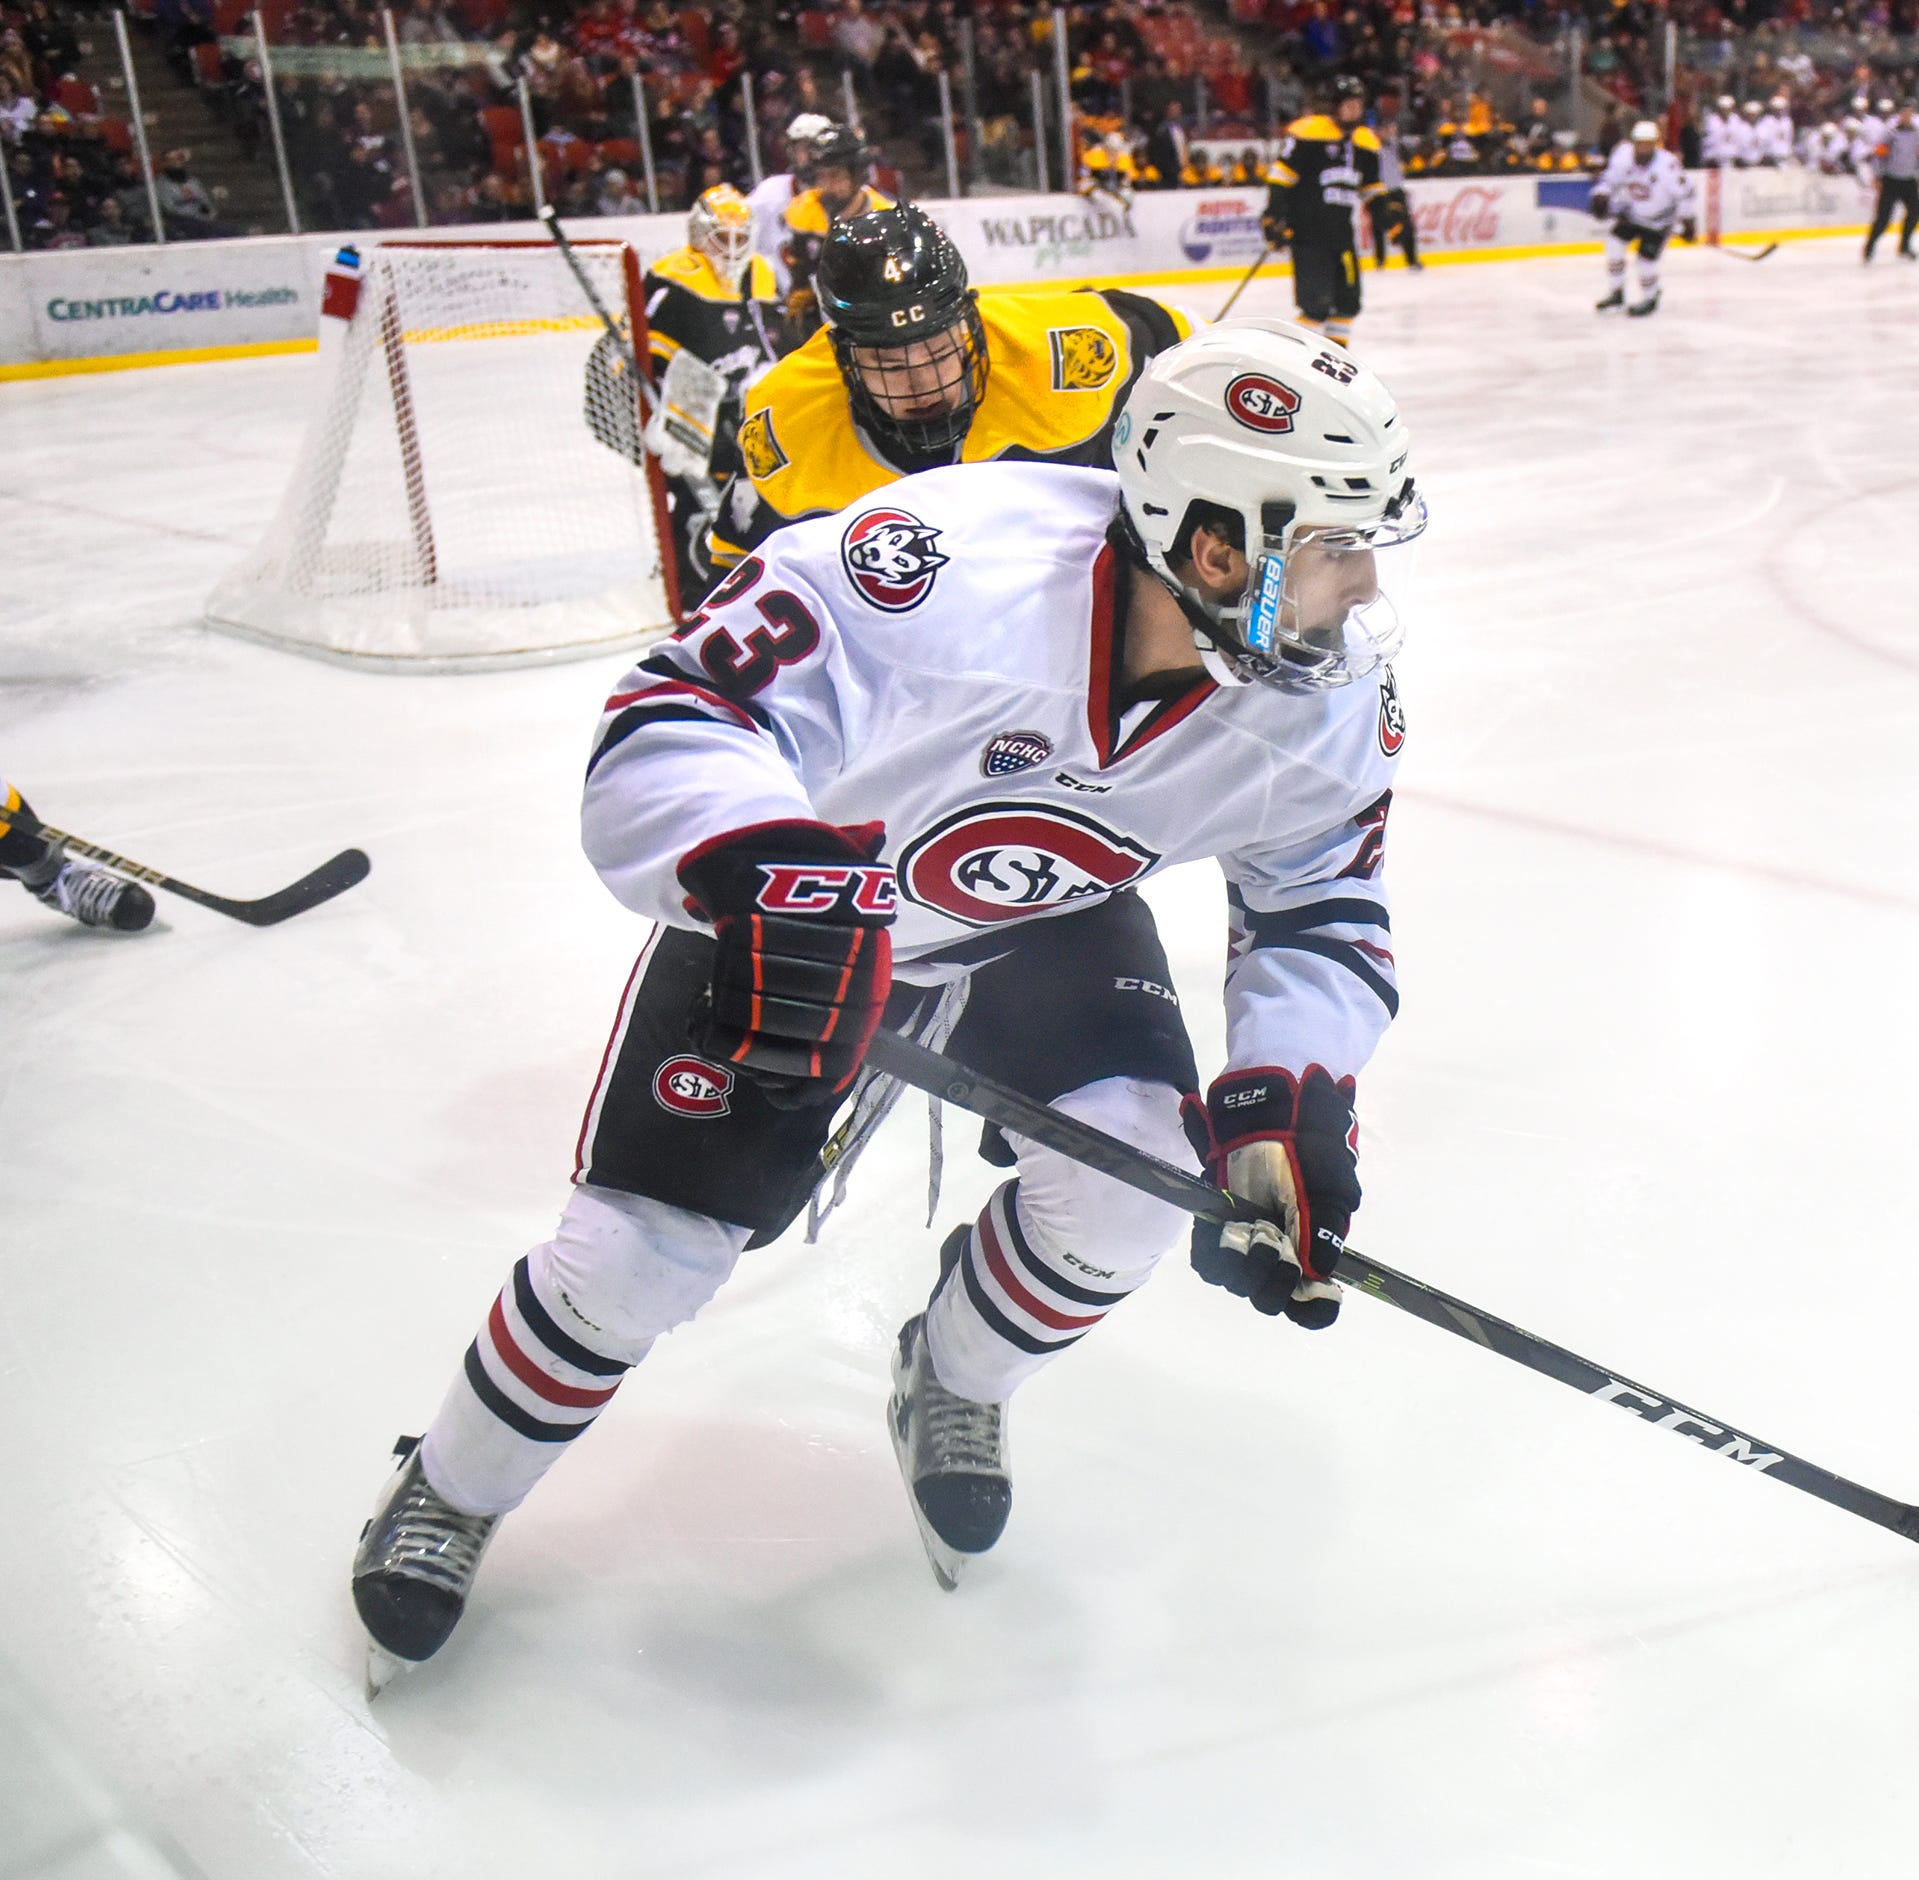 Frozen Faceoff live updates: Colorado College vs. St. Cloud State